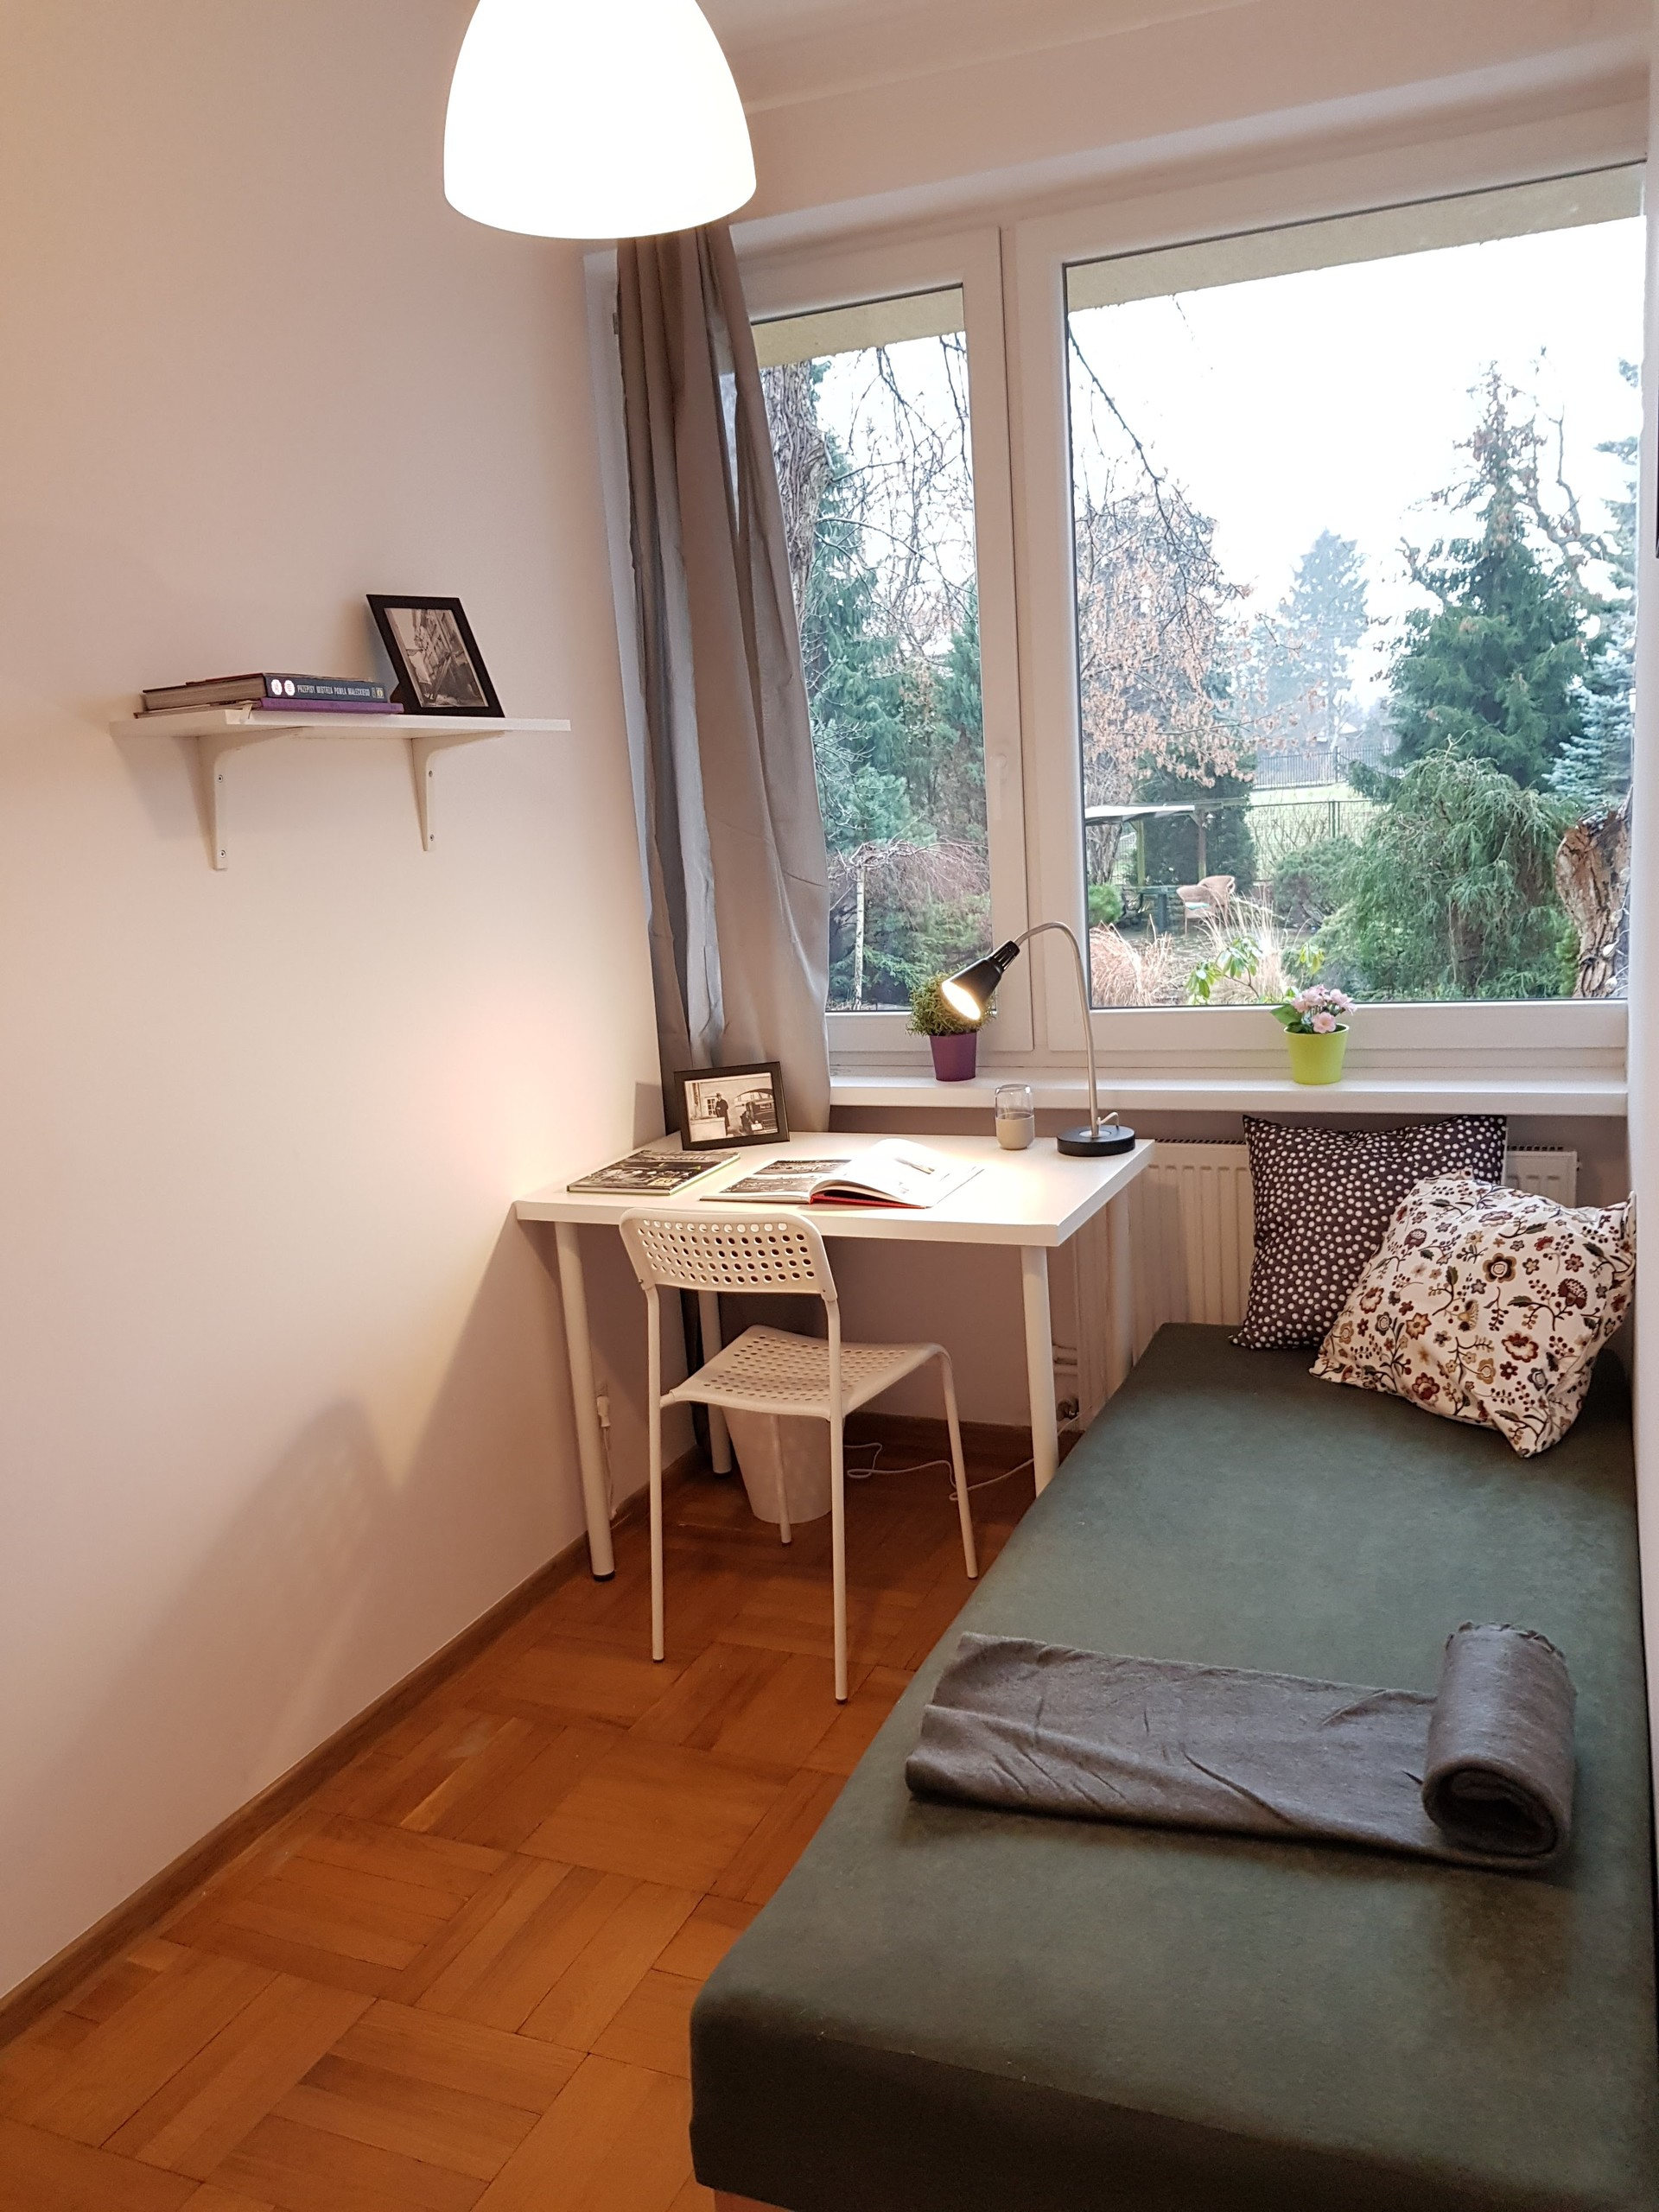 Cozy room for rent